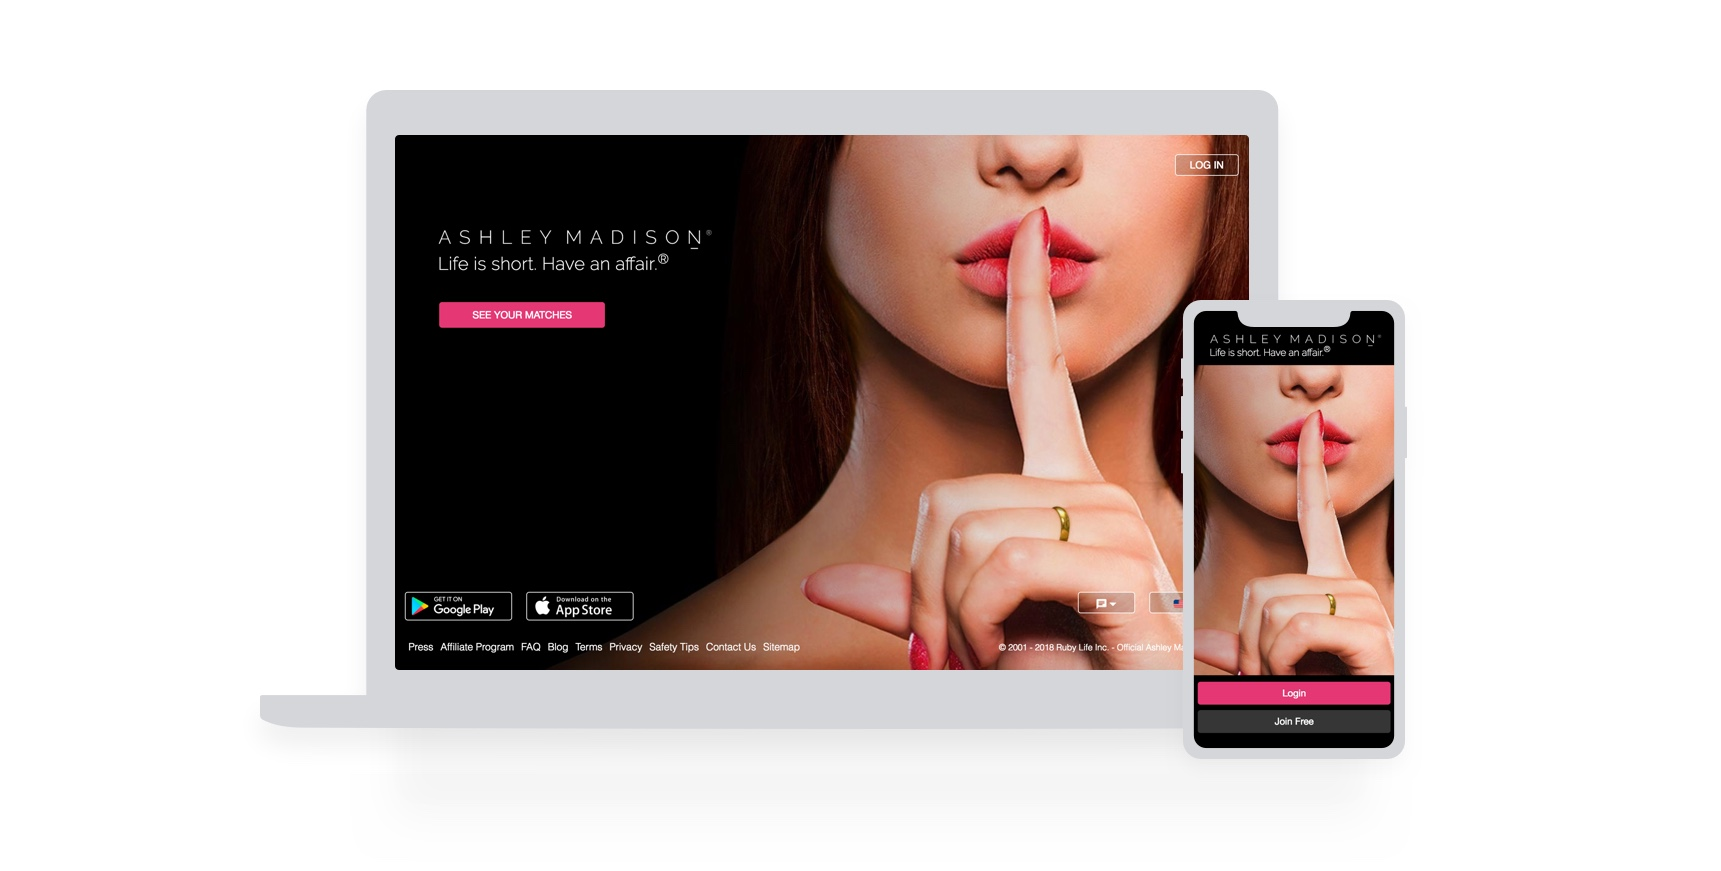 ashley madison ernst young 2017 report